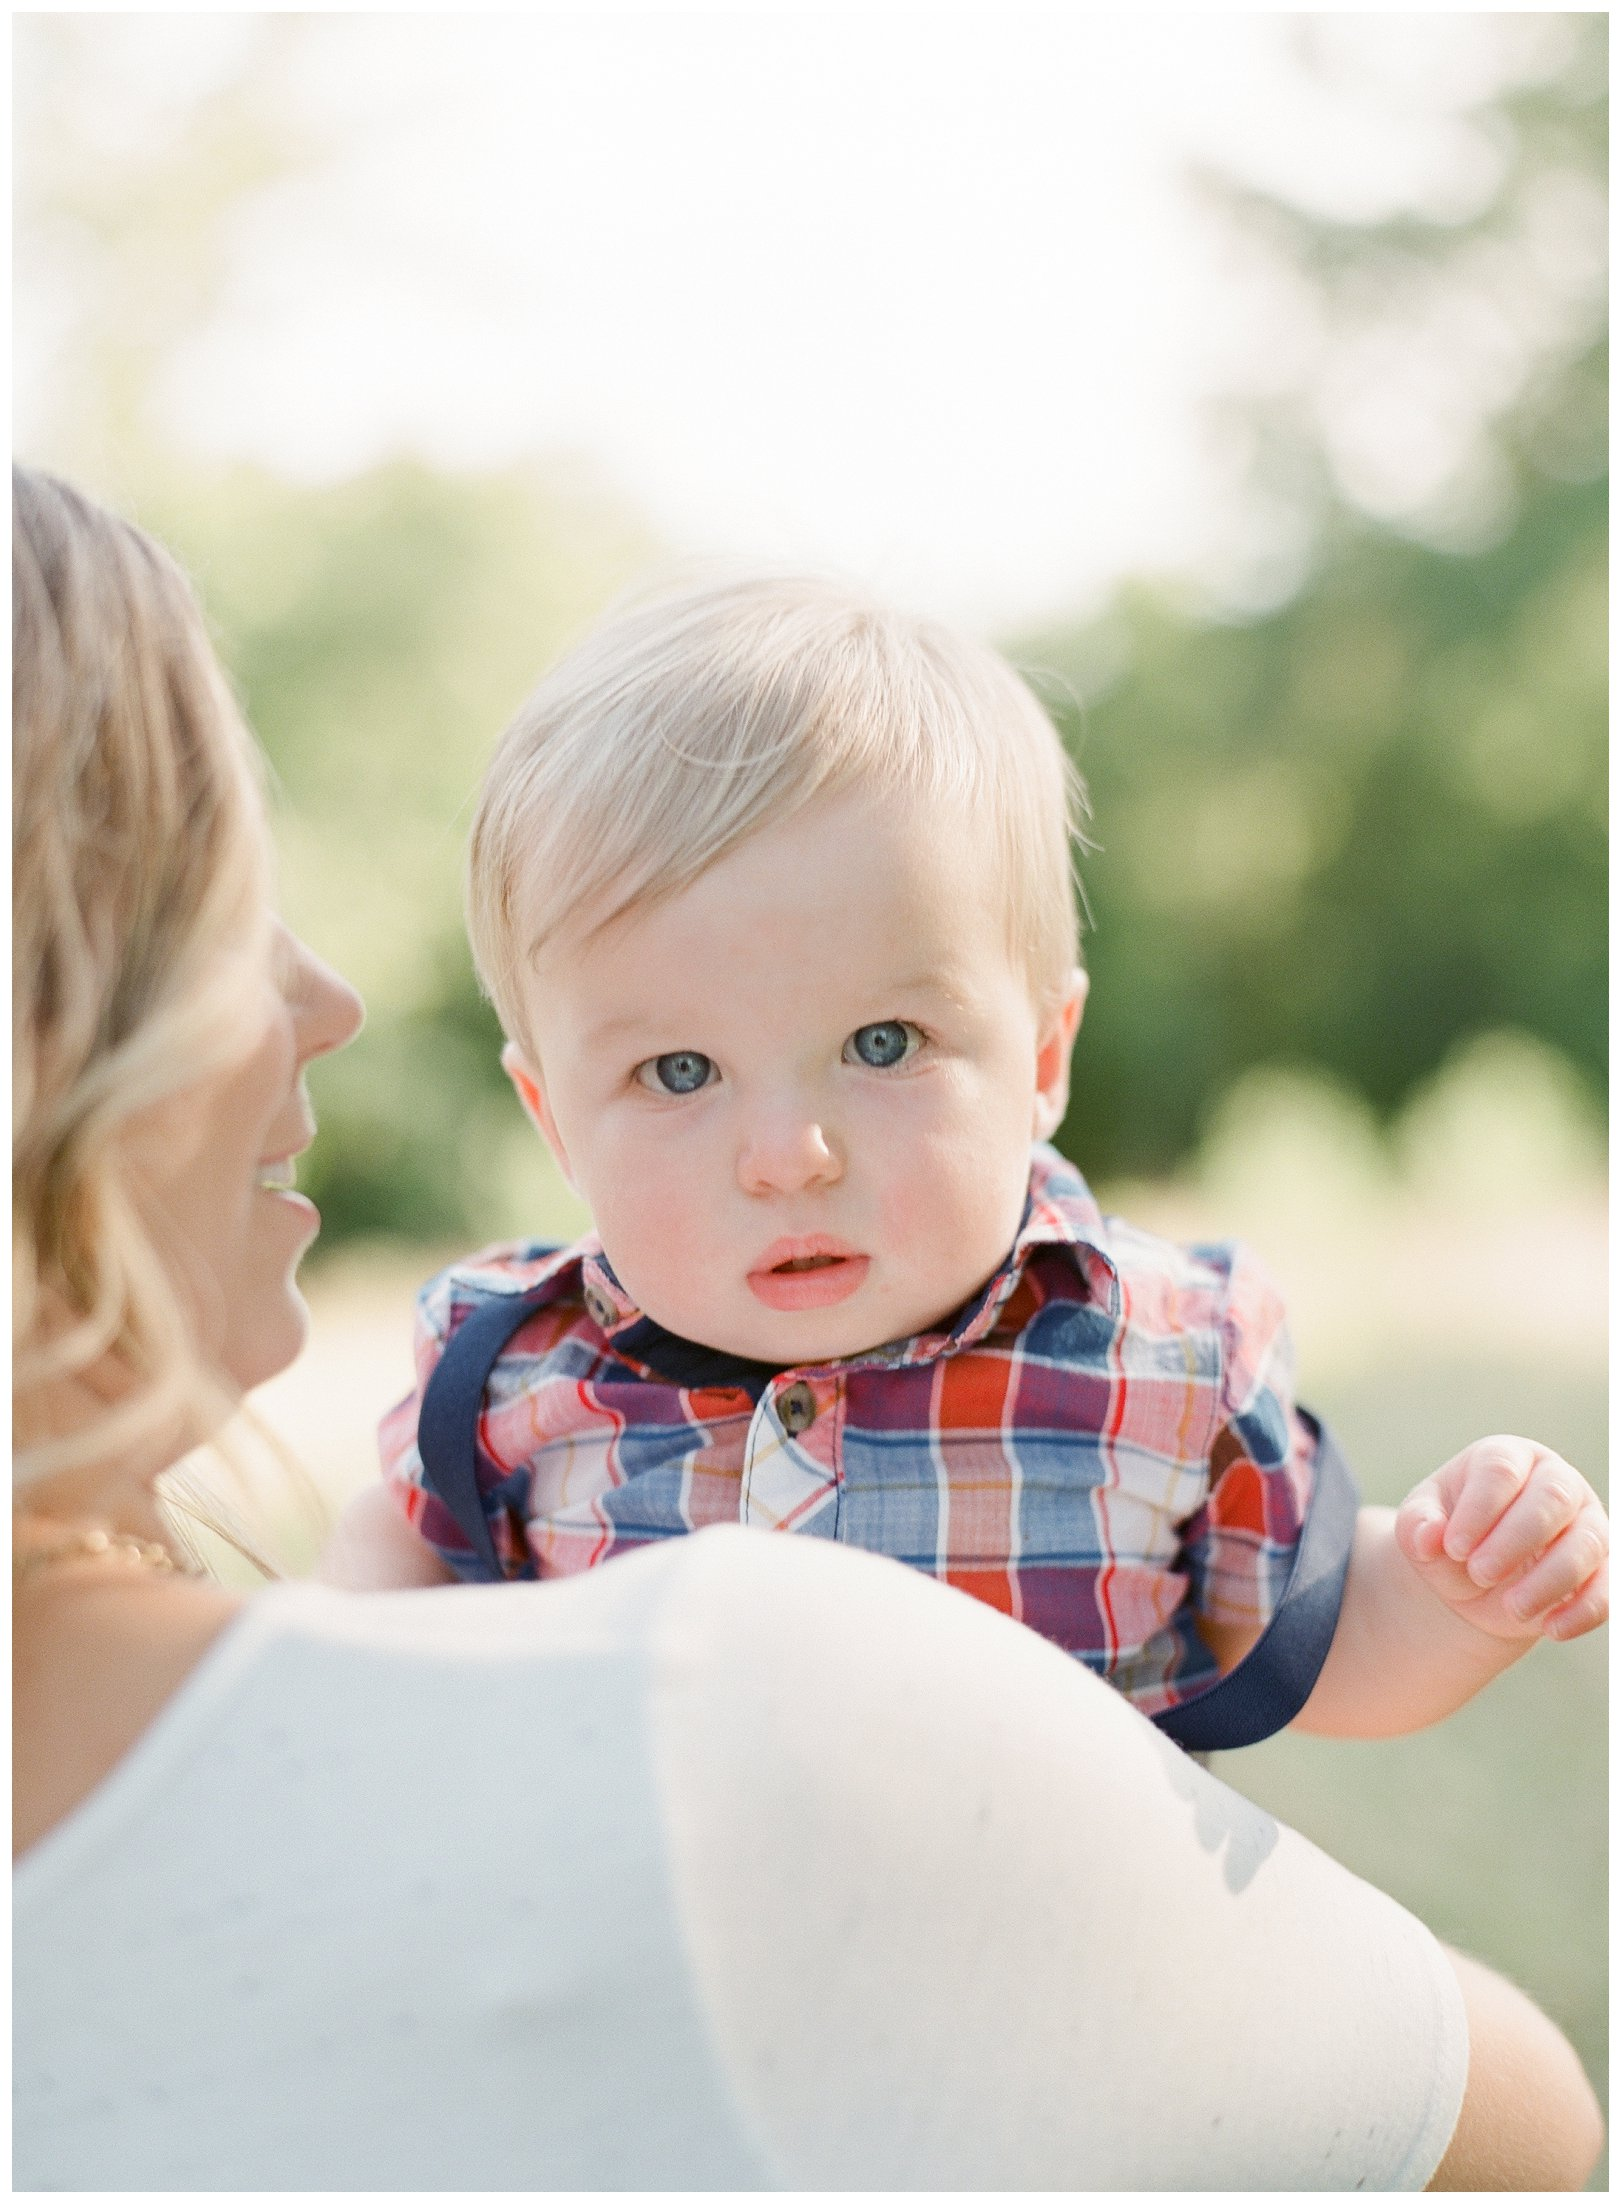 lauren muckler photography_fine art film wedding photography_st louis_photography_3555.jpg